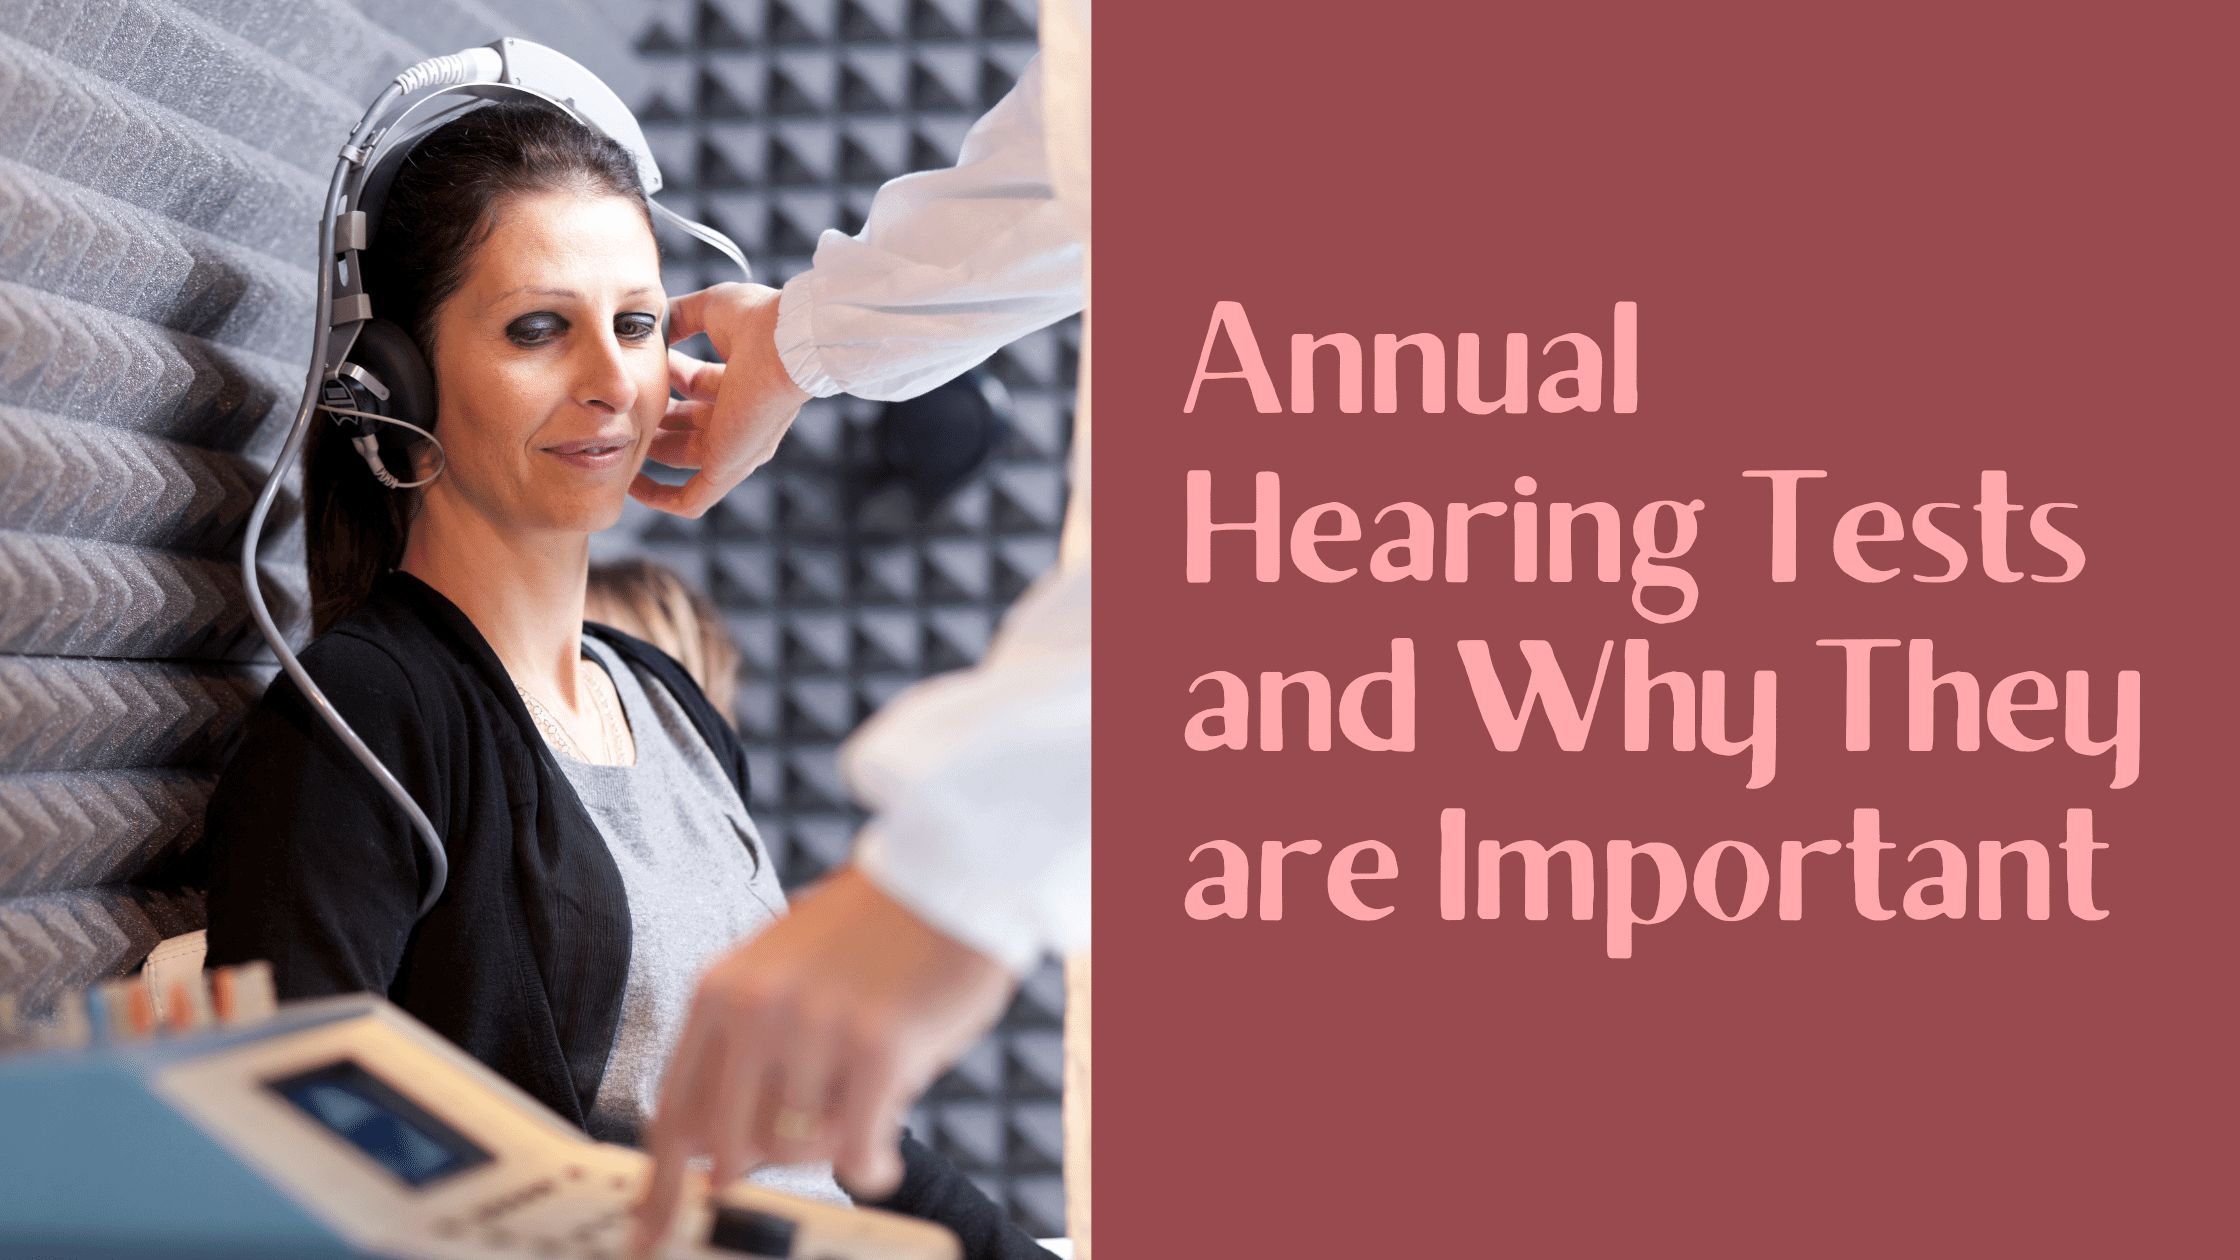 Annual Hearing Tests and Why They are Important